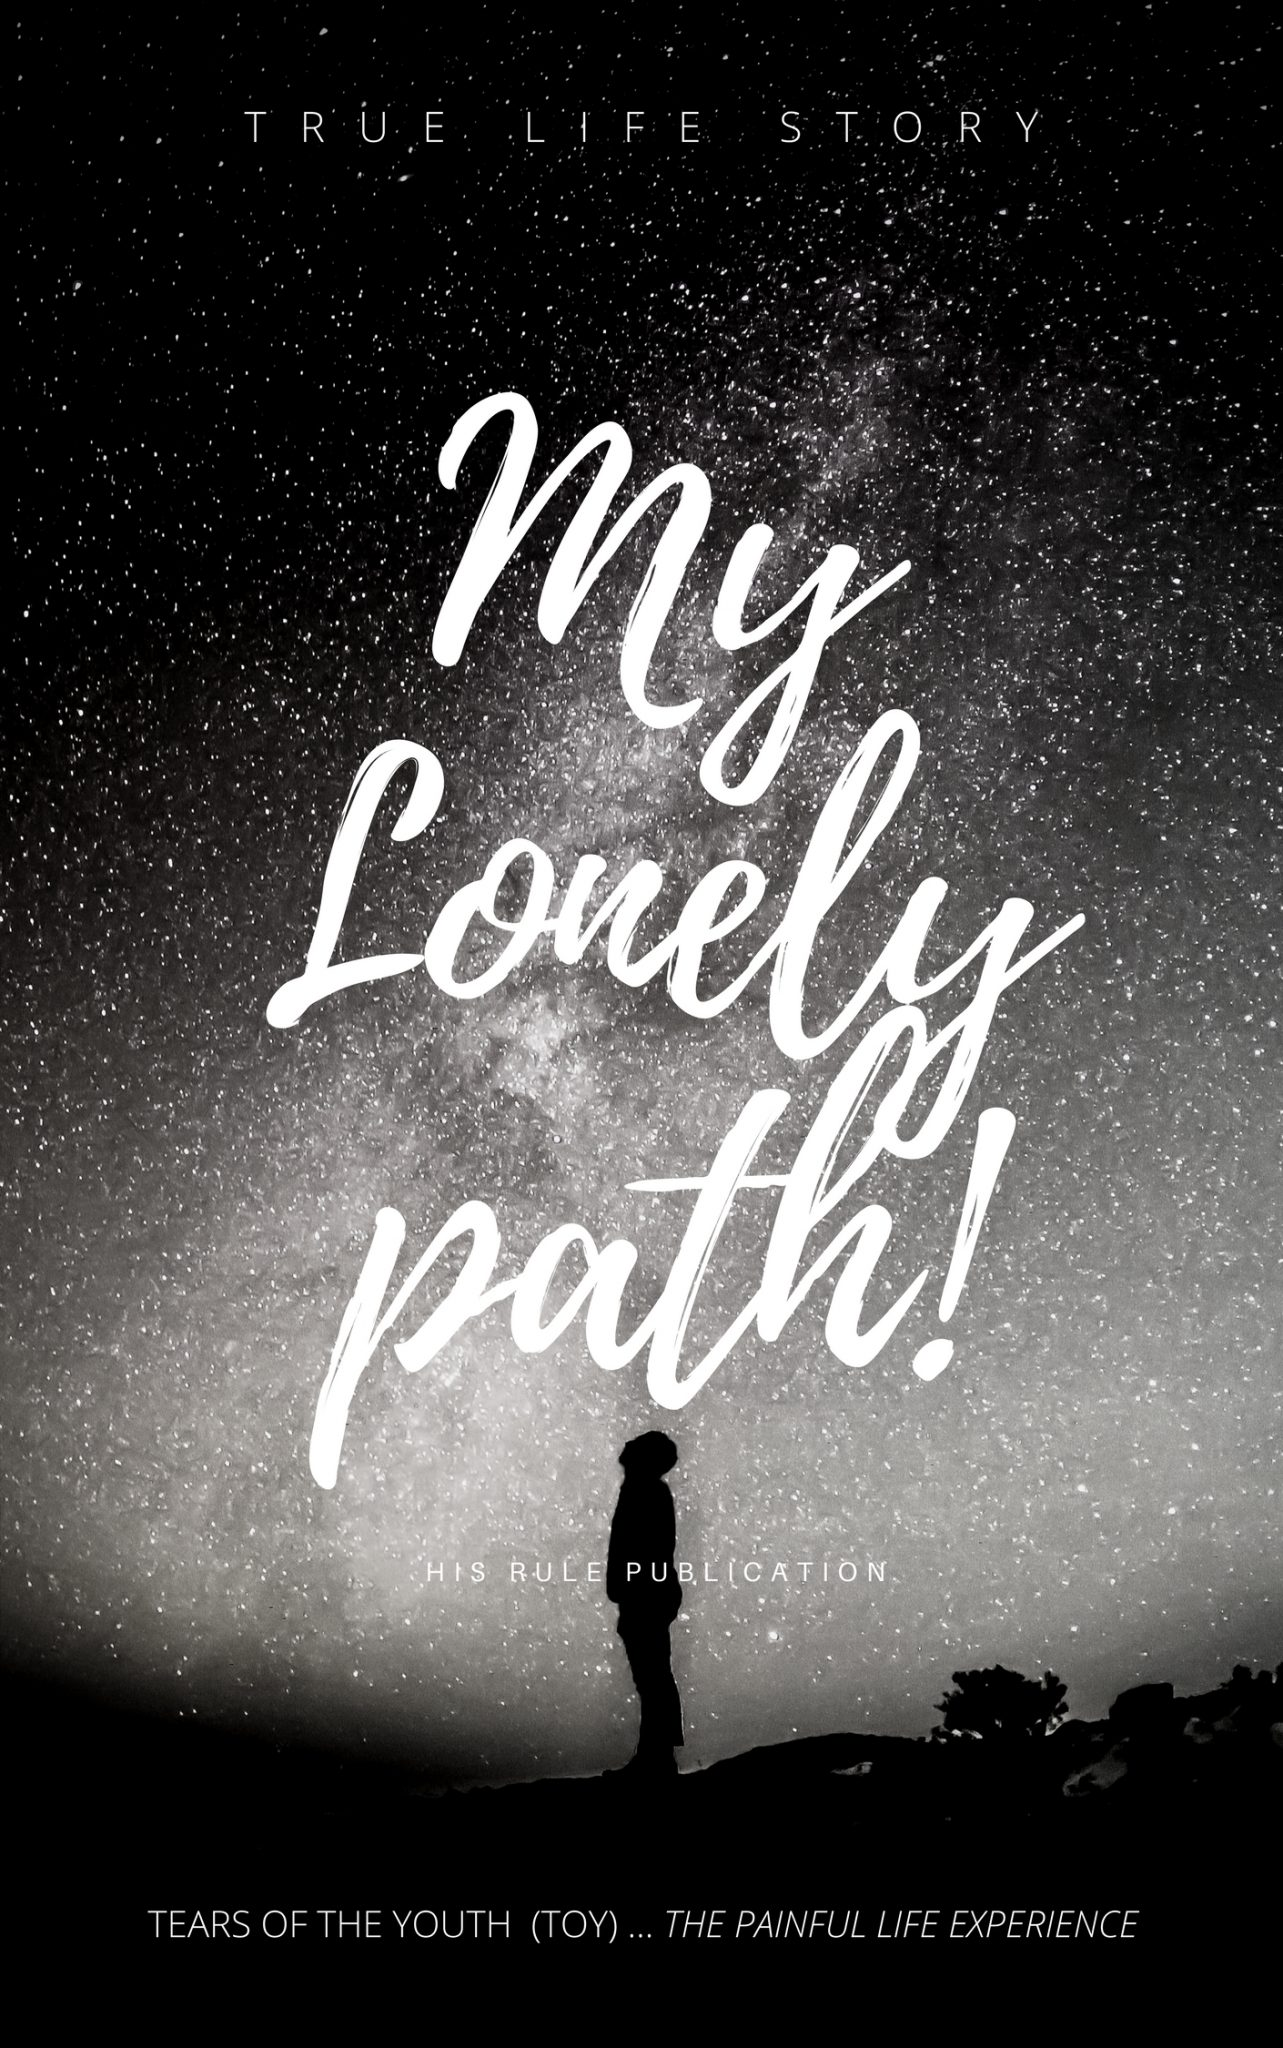 The Lonely path (Tears of the Youth)